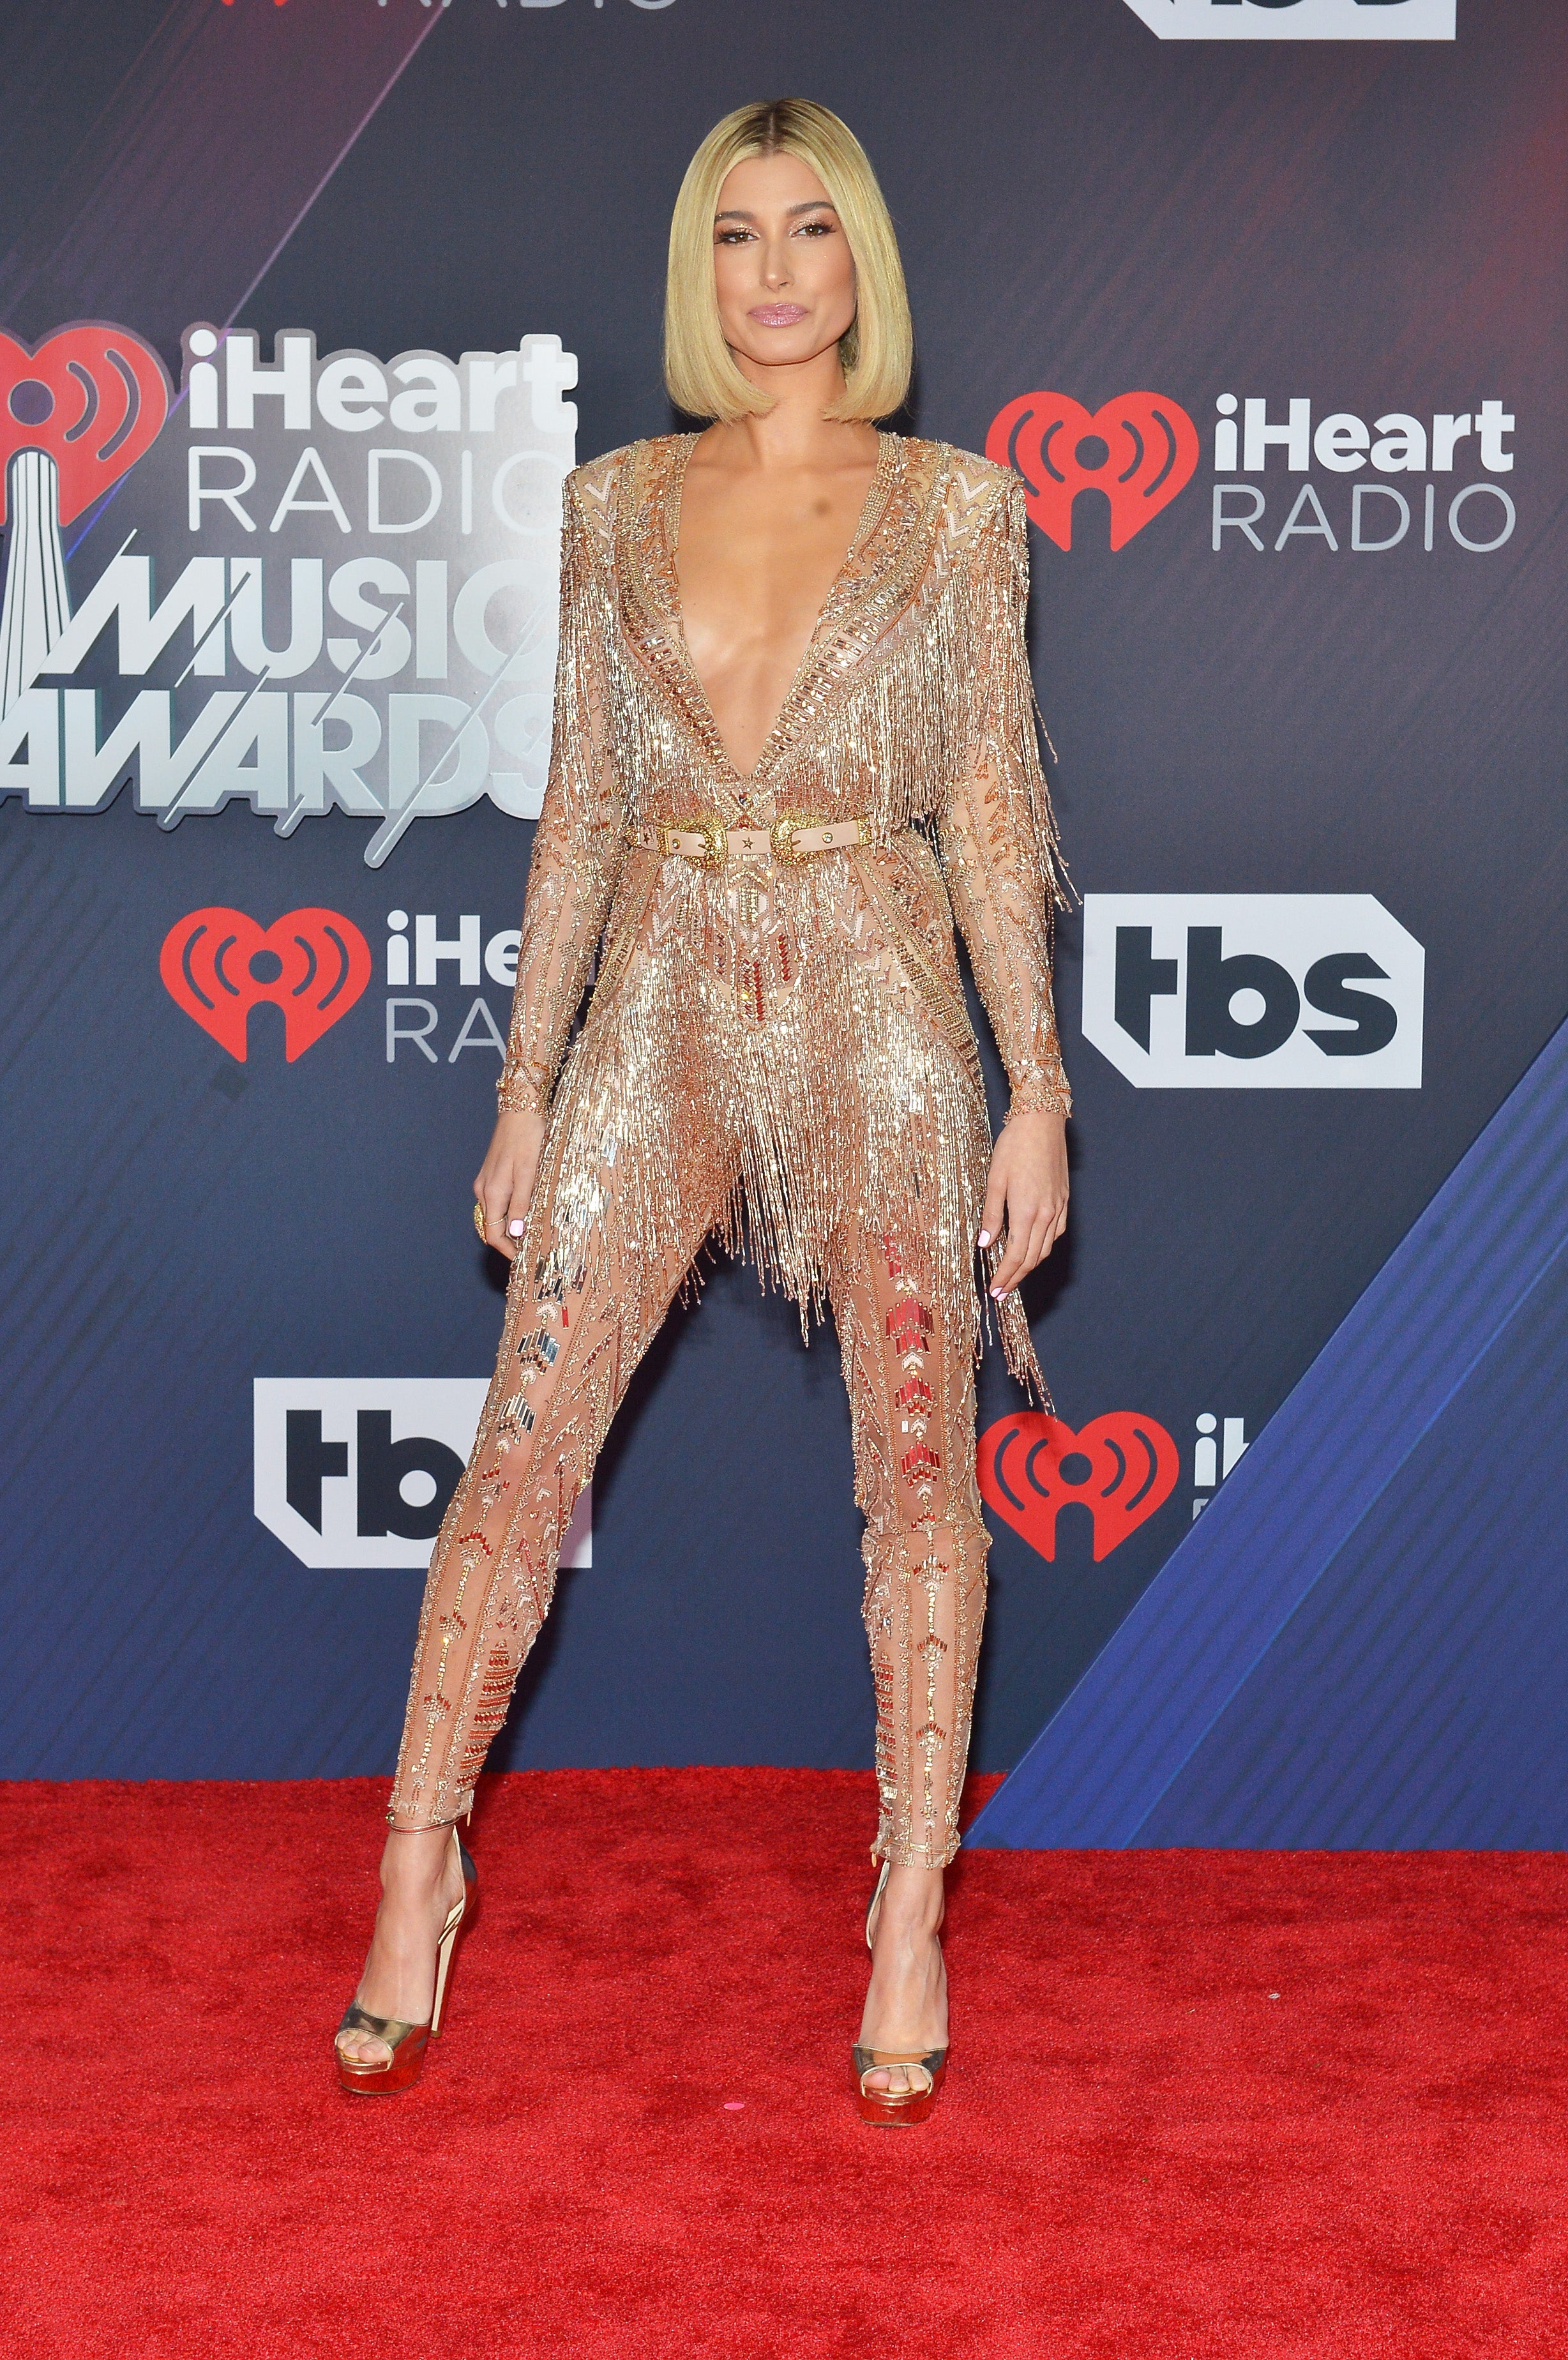 Iheartradio Music Awards 2018 Red Carpet Arrivals